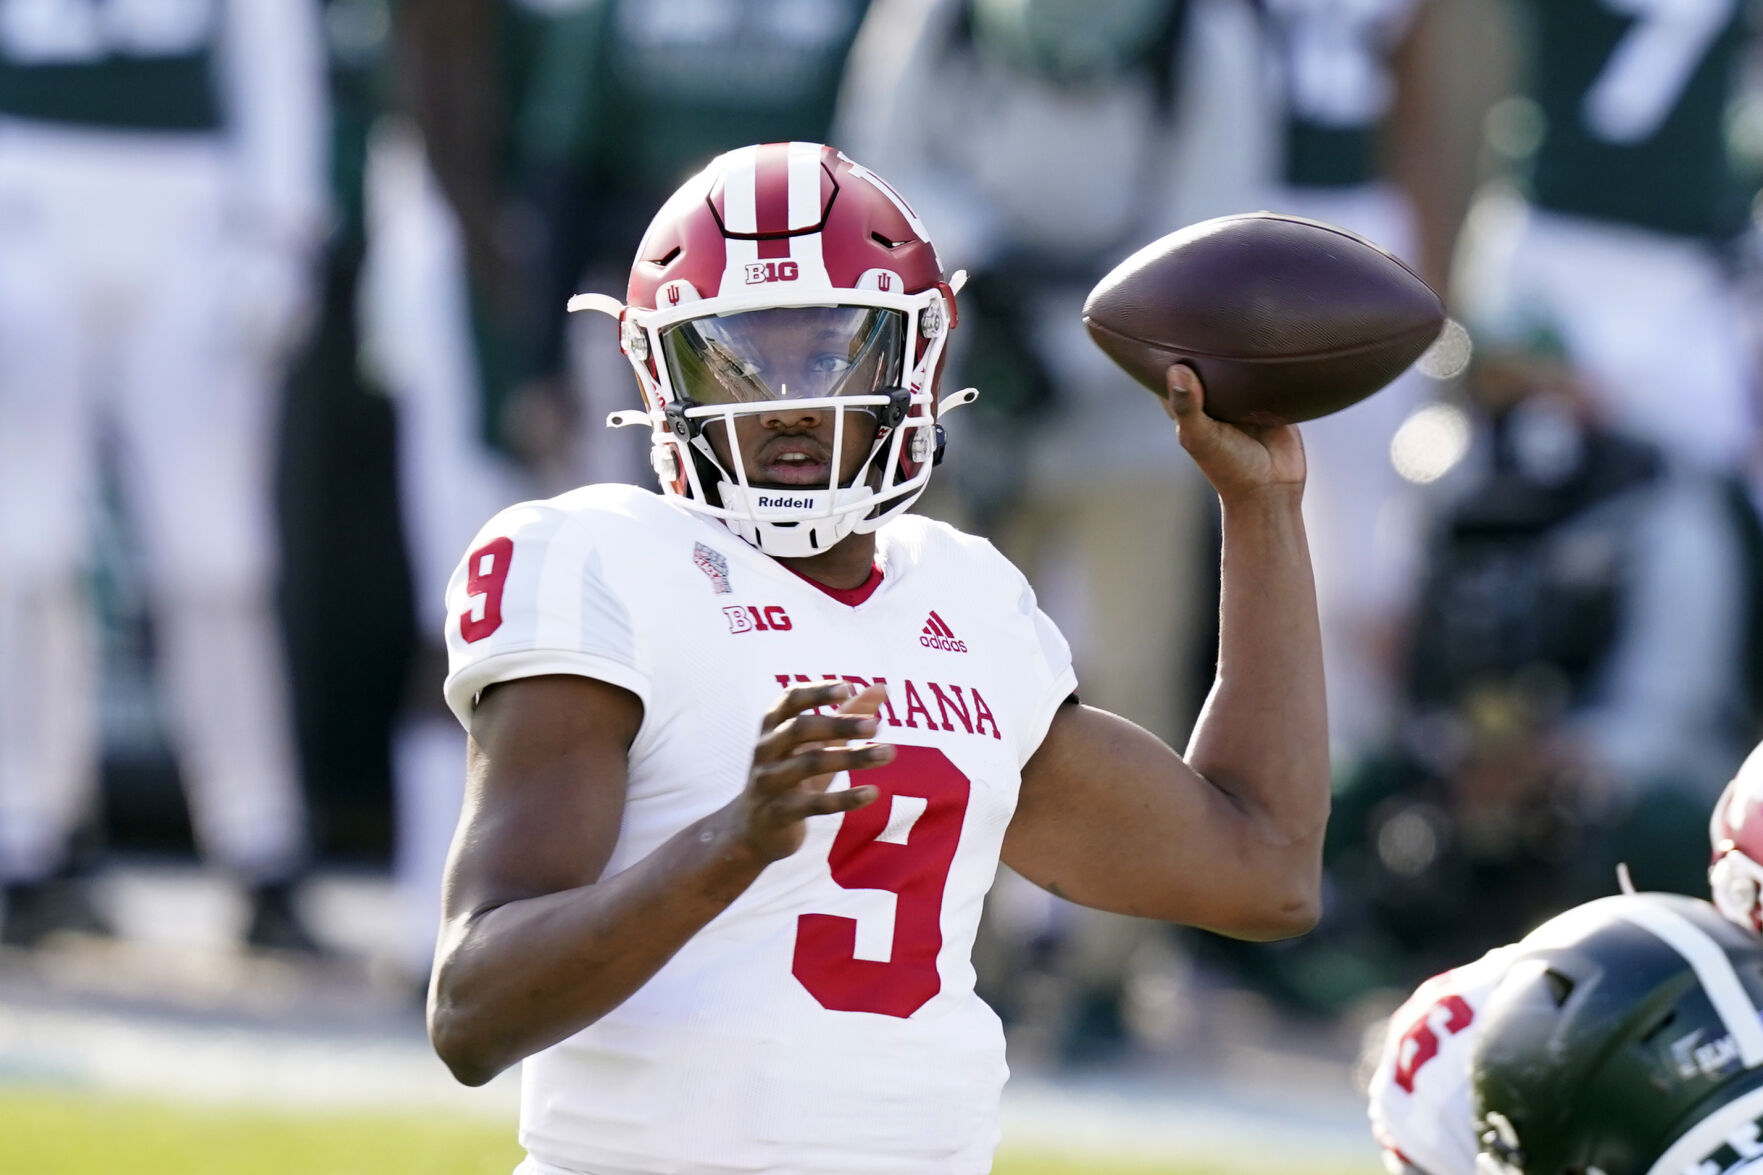 Indiana Ohio State Five Matchups To Watch In Top Tilt Sports Heraldbulletin com